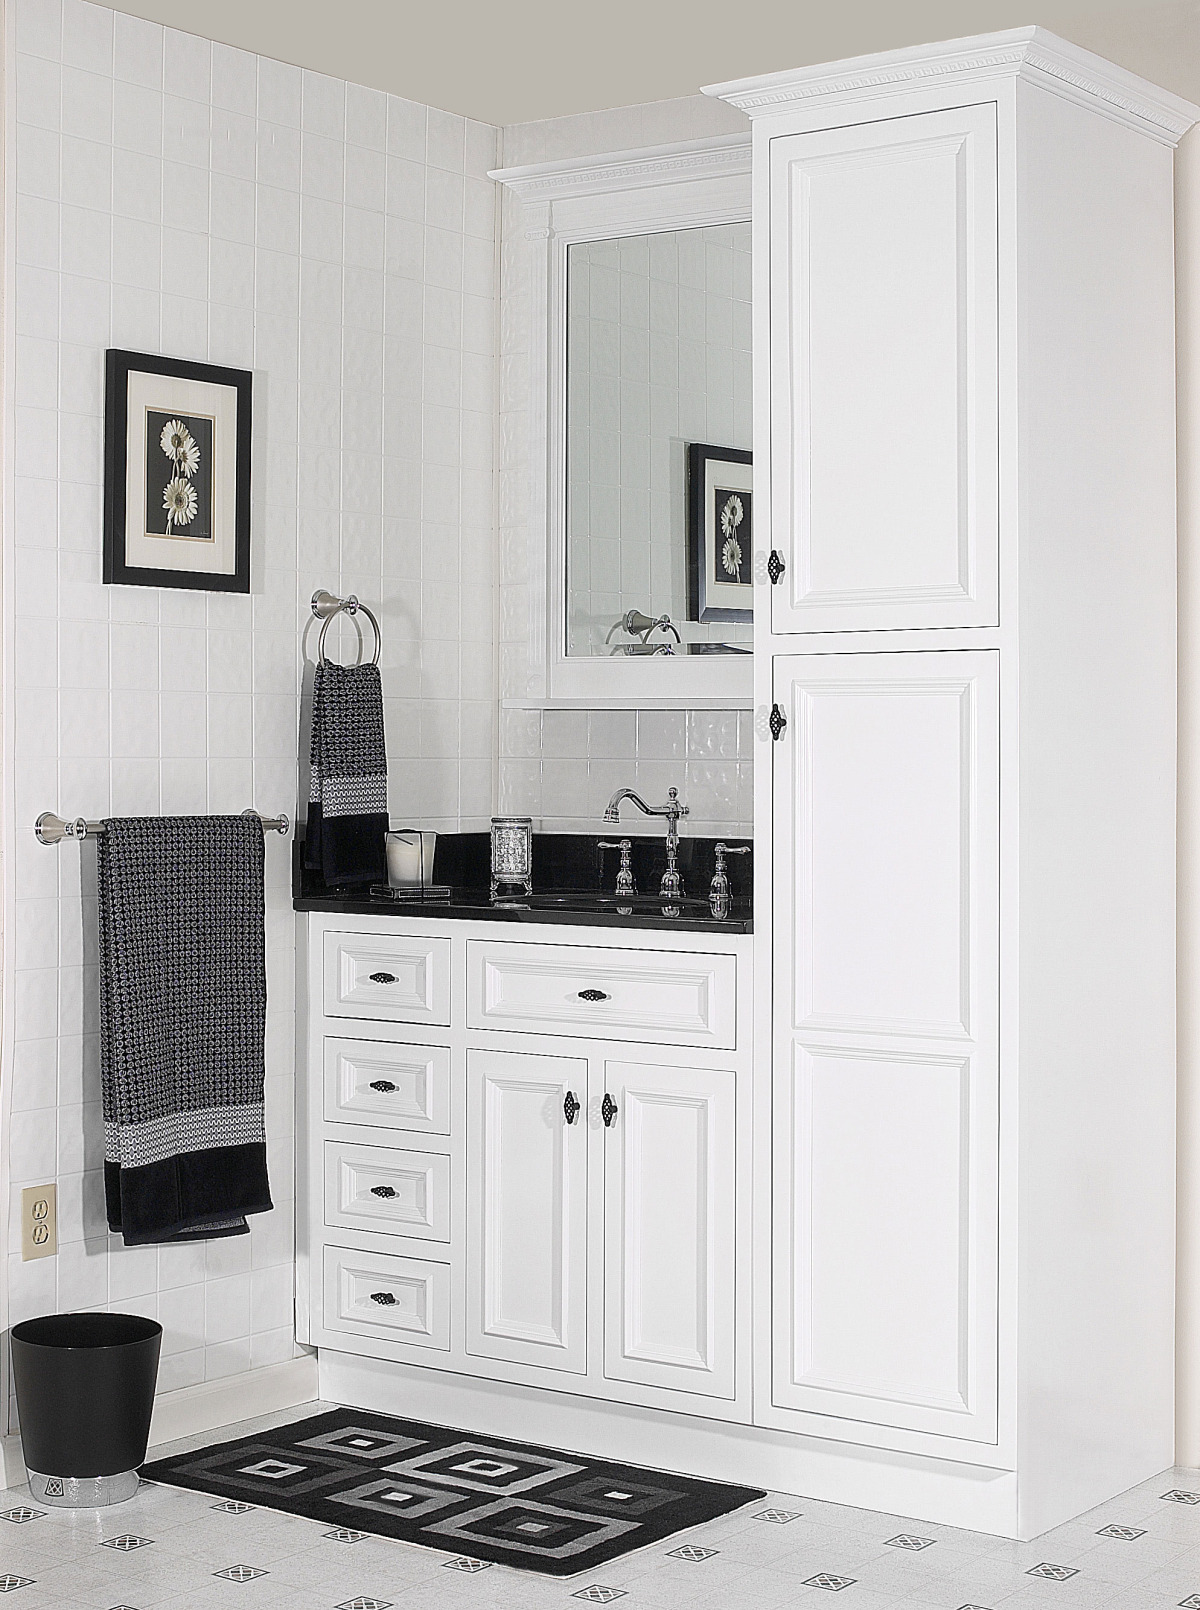 Bathroom vanity premium kitchen cabinets Bathroom vanity cabinet storage